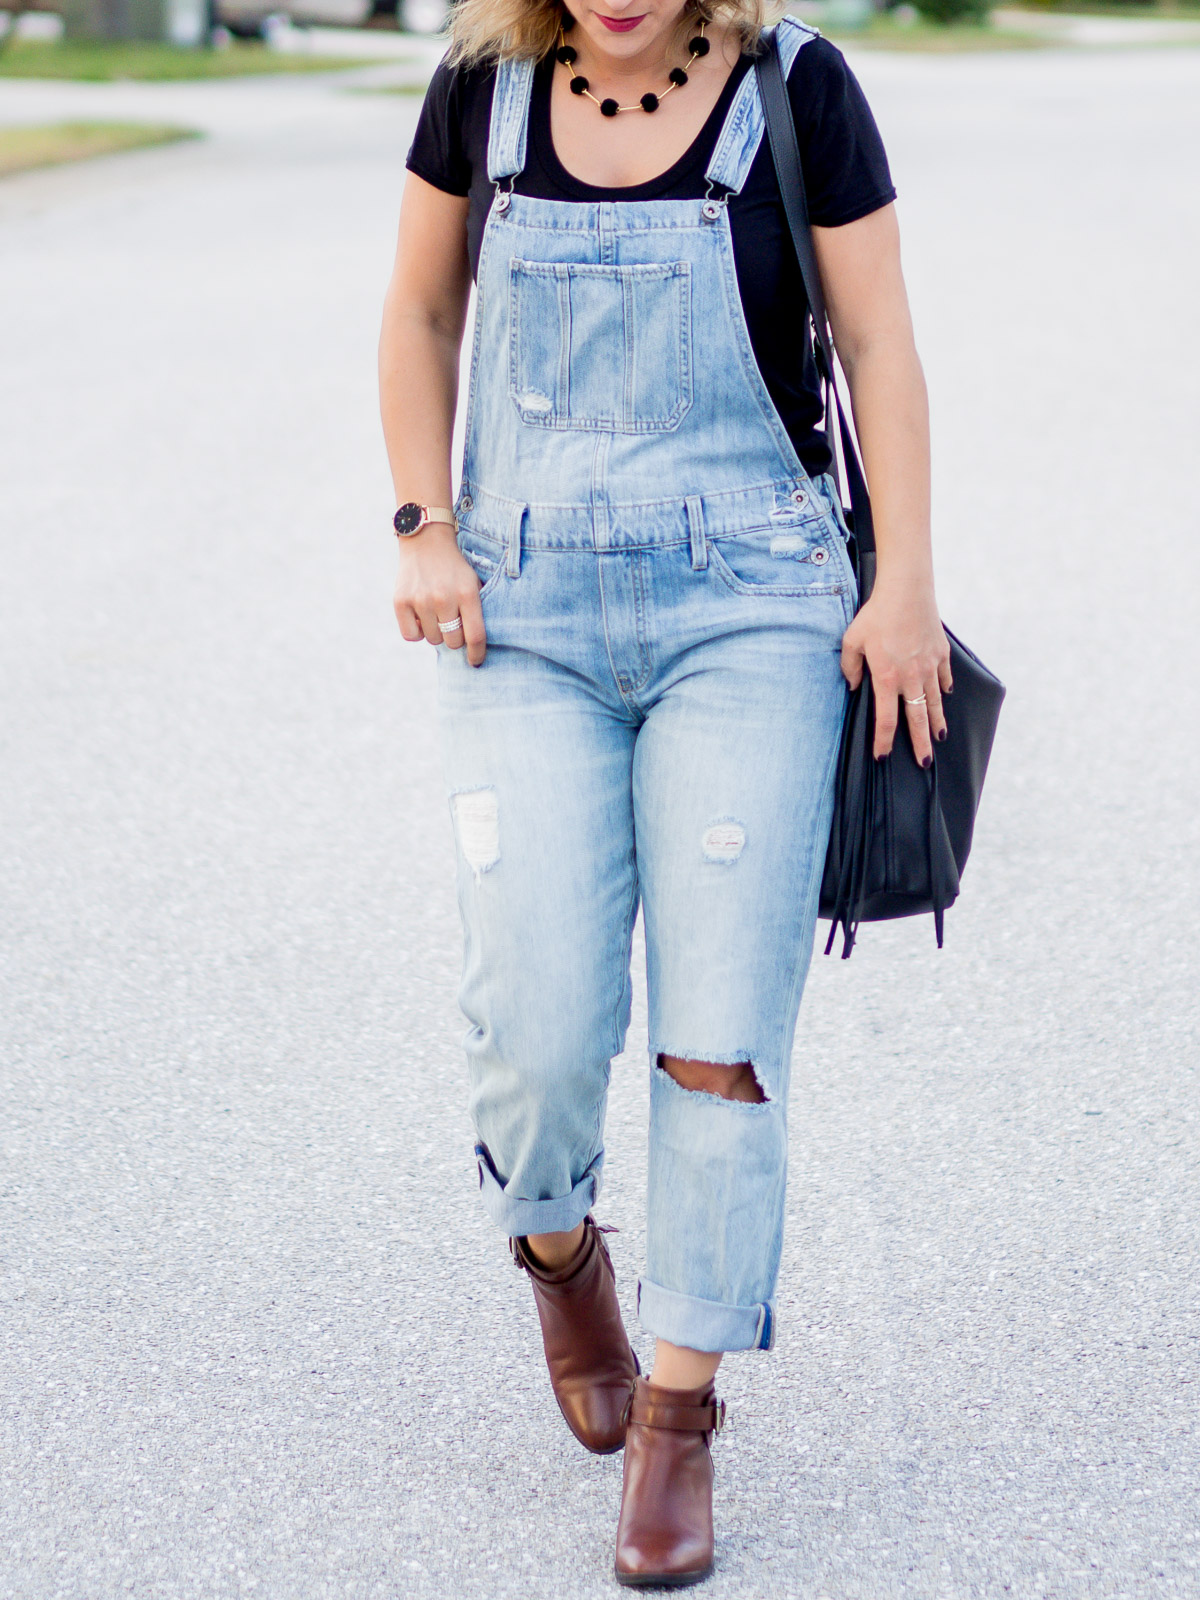 Ripped overalls with ankle booties and a basic black t-shirt